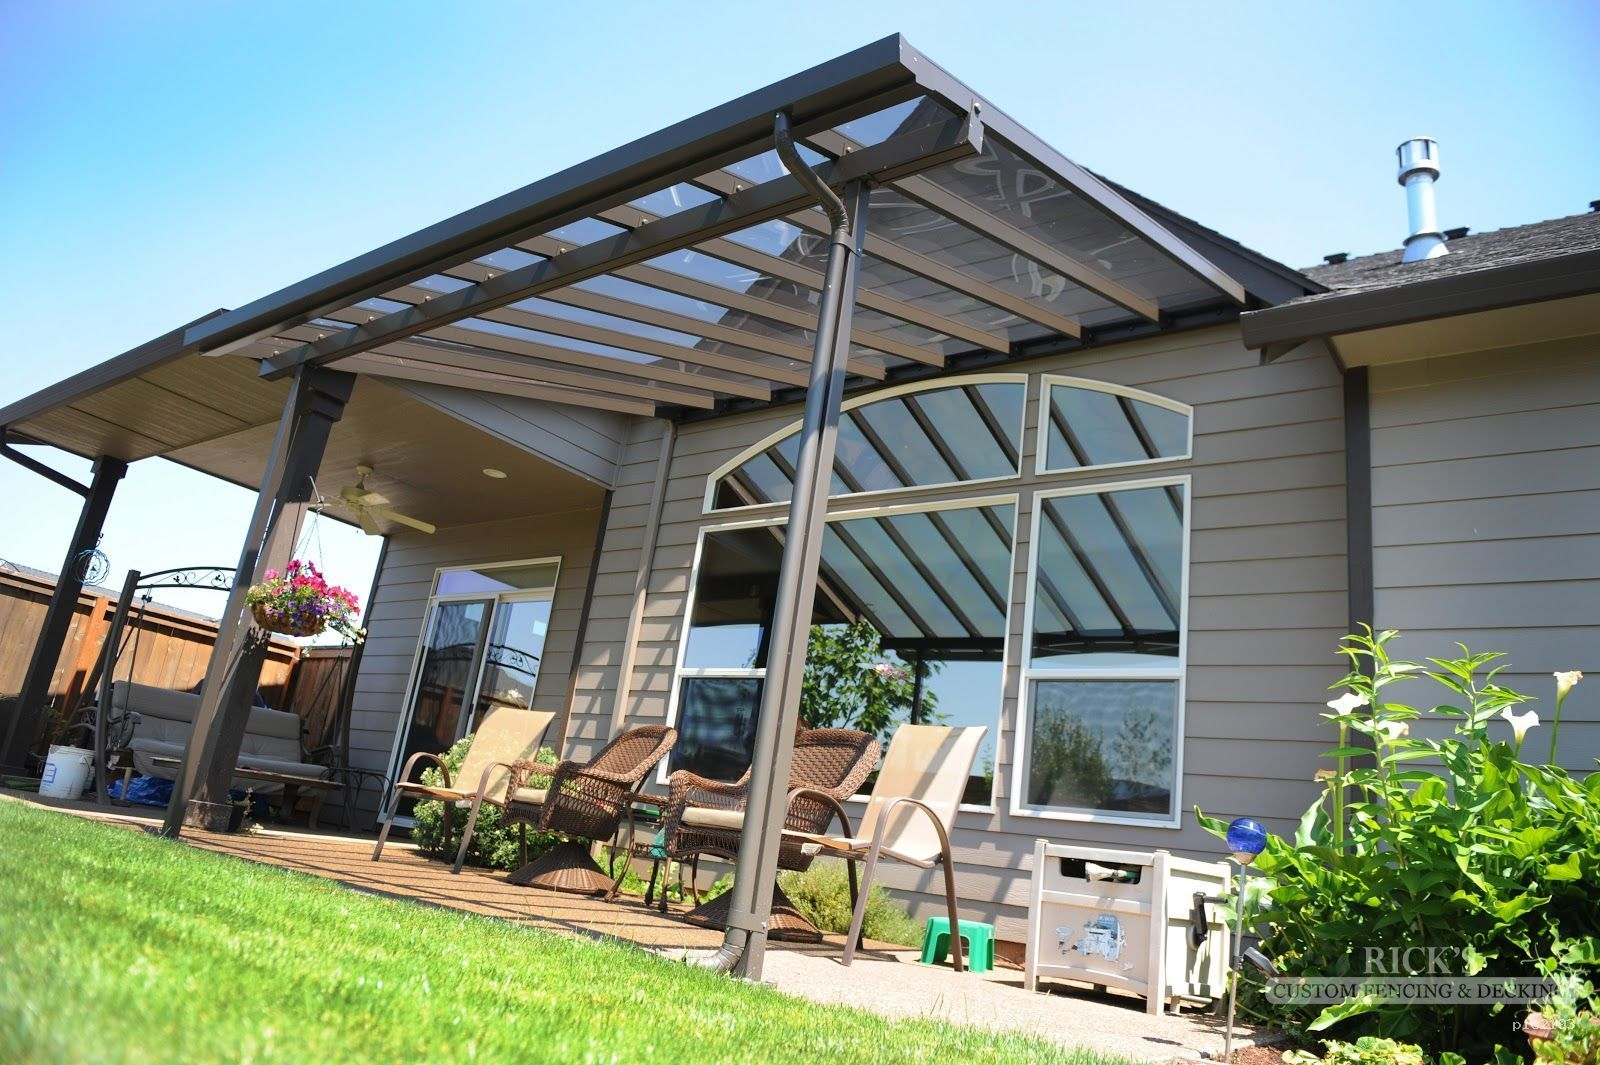 Aluminum framed patio covers allow home owners to enjoy their back aluminum framed patio covers allow home owners to enjoy their back yard year round solutioingenieria Image collections